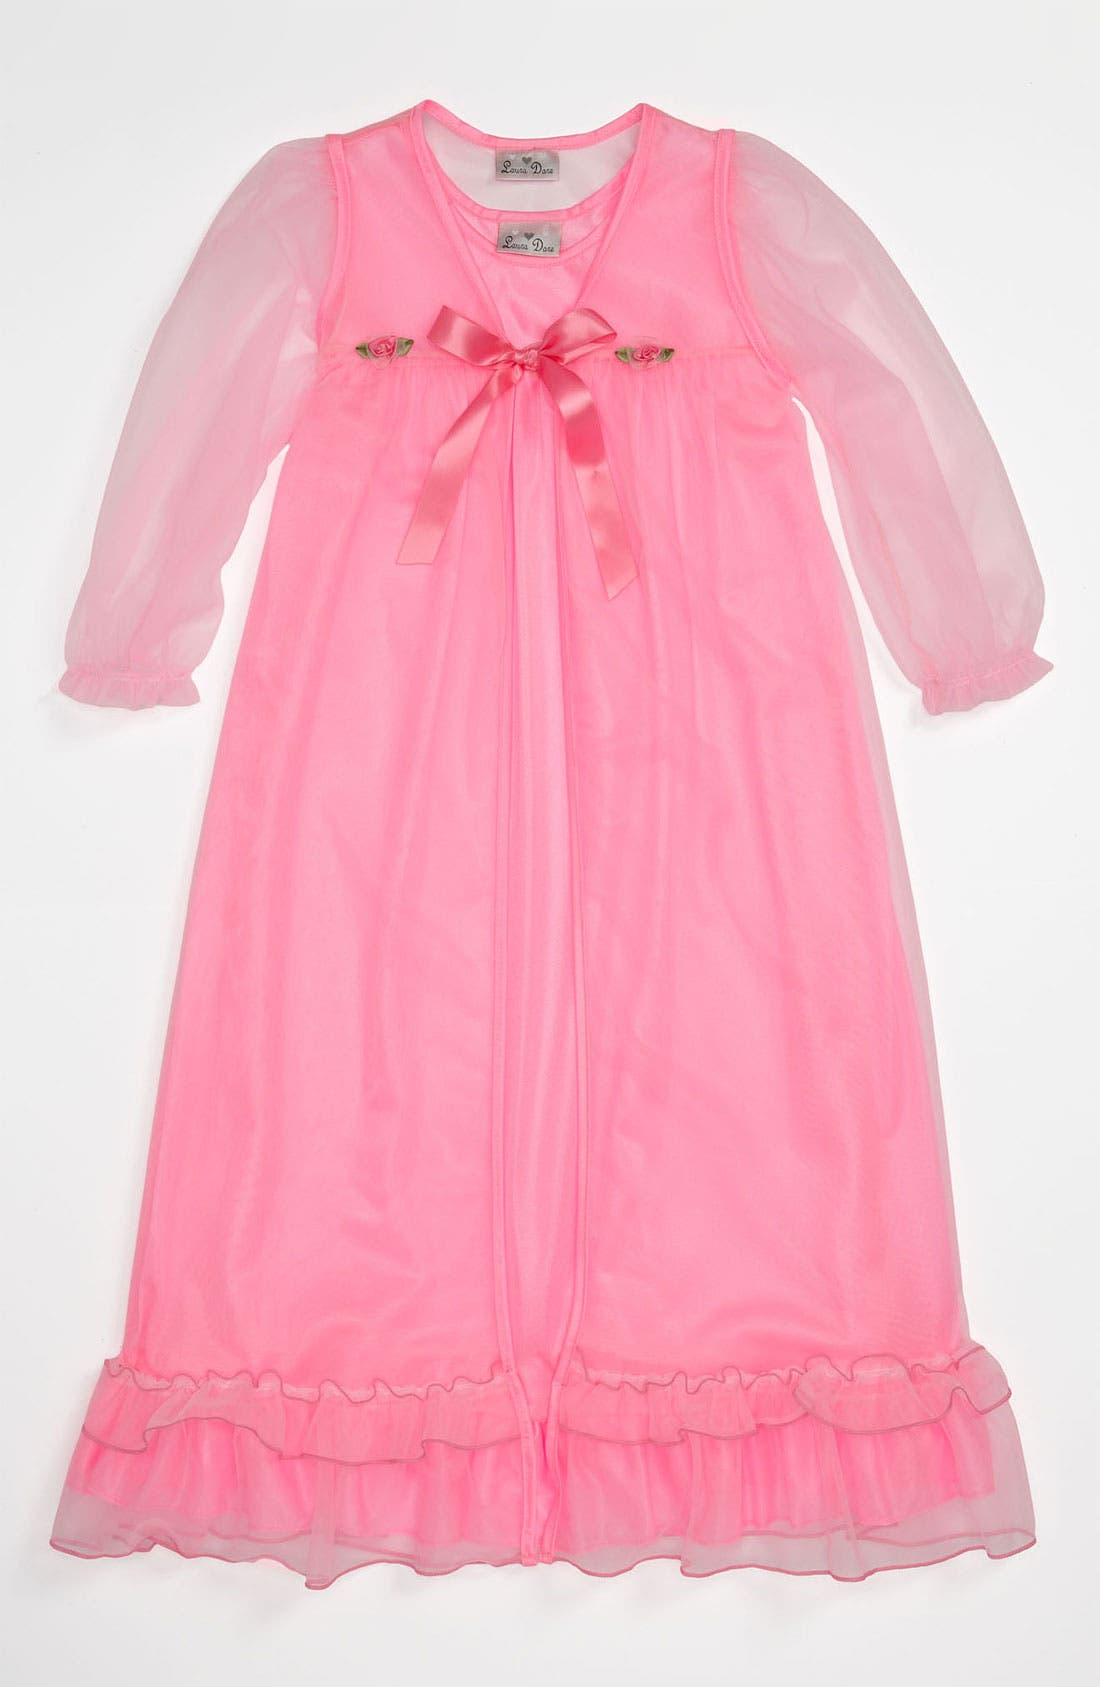 Alternate Image 1 Selected - Laura Dare Nightgown & Robe (Little Girls)